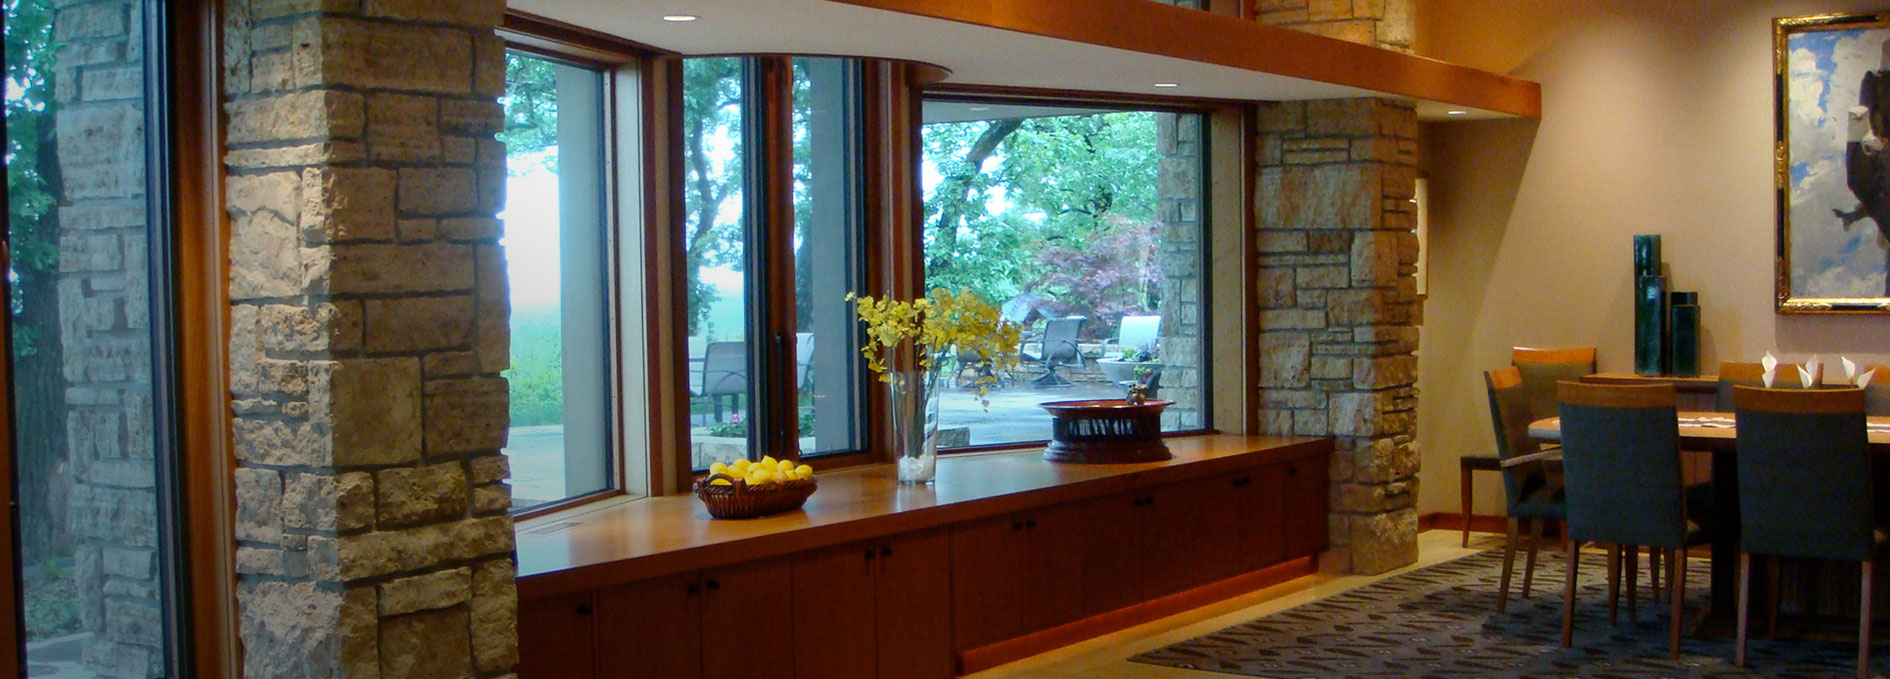 Window Tinting Mn >> Residential Window Tinting | Today's Window Fashions | Andover, MN